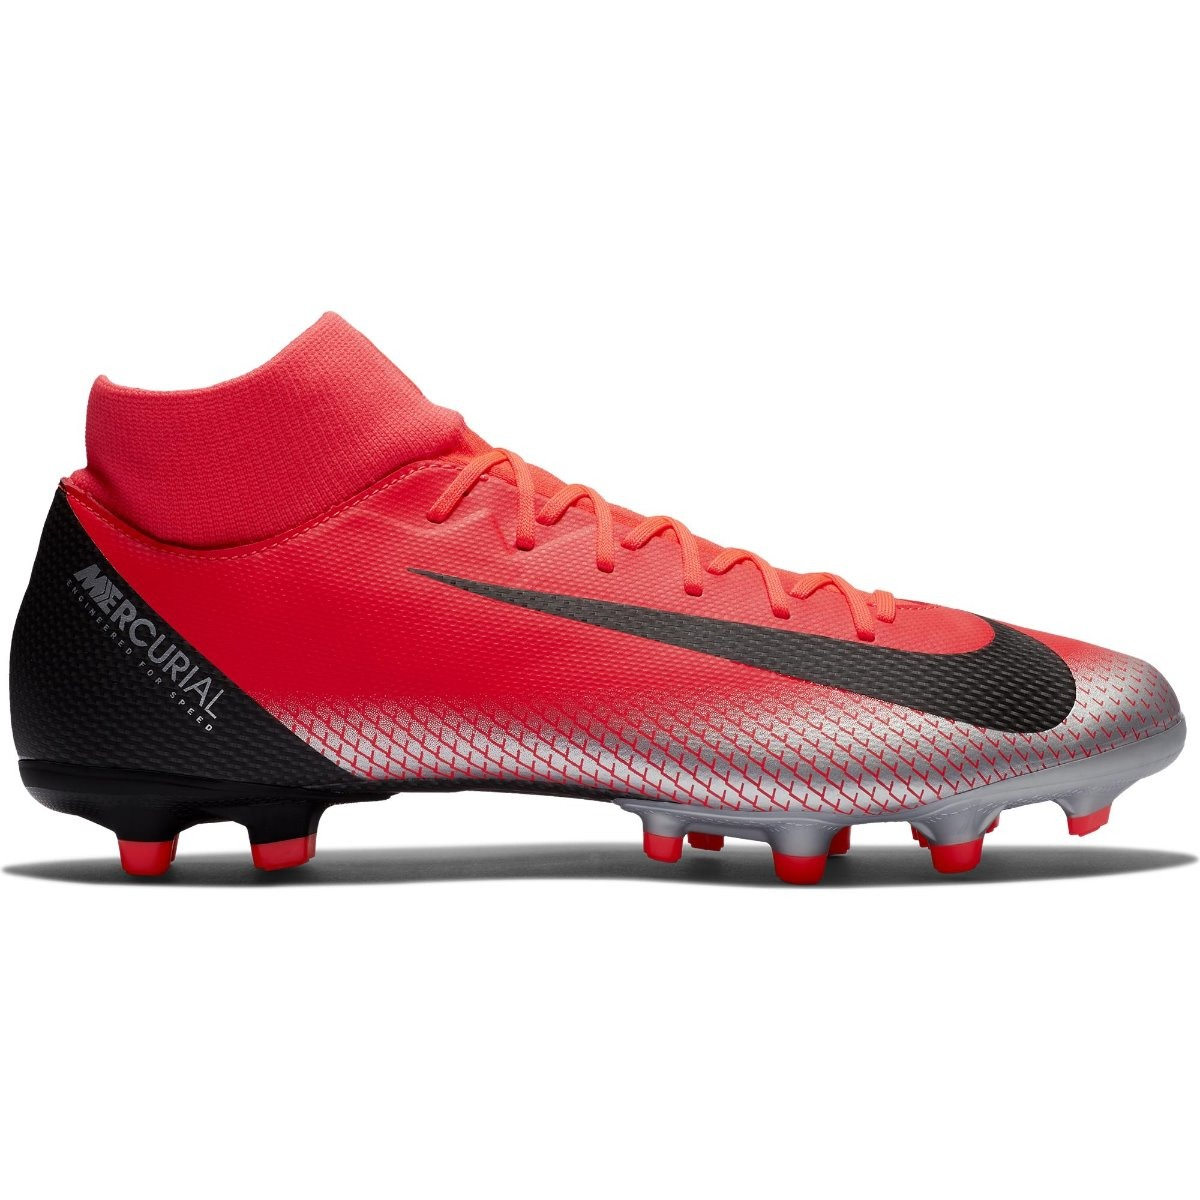 buy popular 6a04e 94401 Tacos Nike Superfly 6 Cristiano Ronaldo #7.5 Y 9